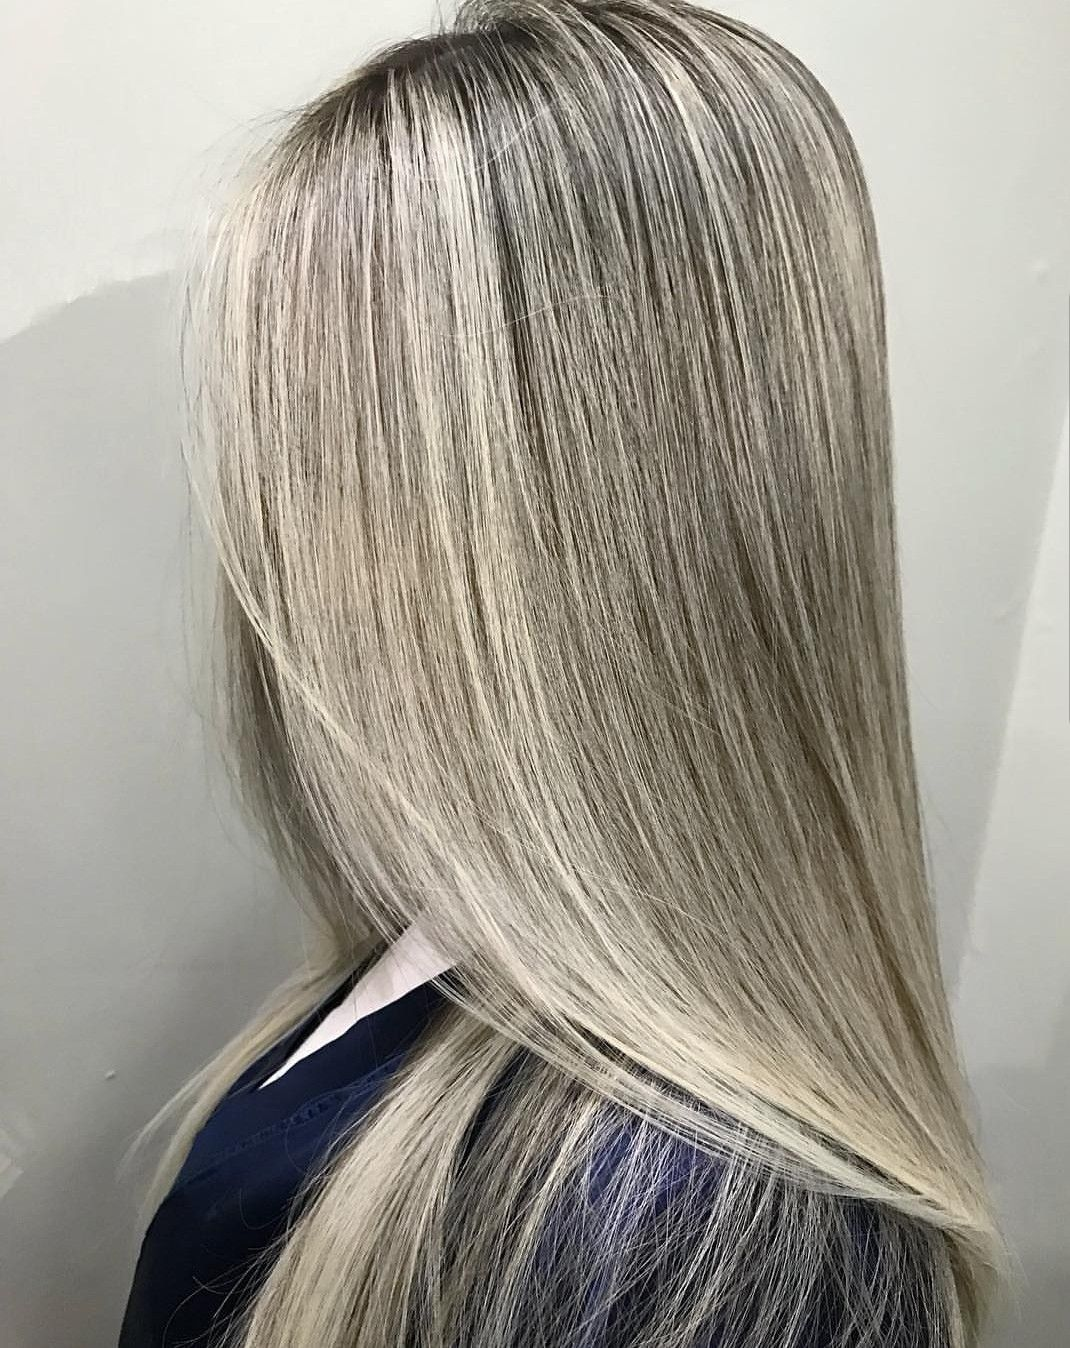 Pin By Ming Cai On Hairs Hair Color Highlights Wigs Hair Extensions Hair